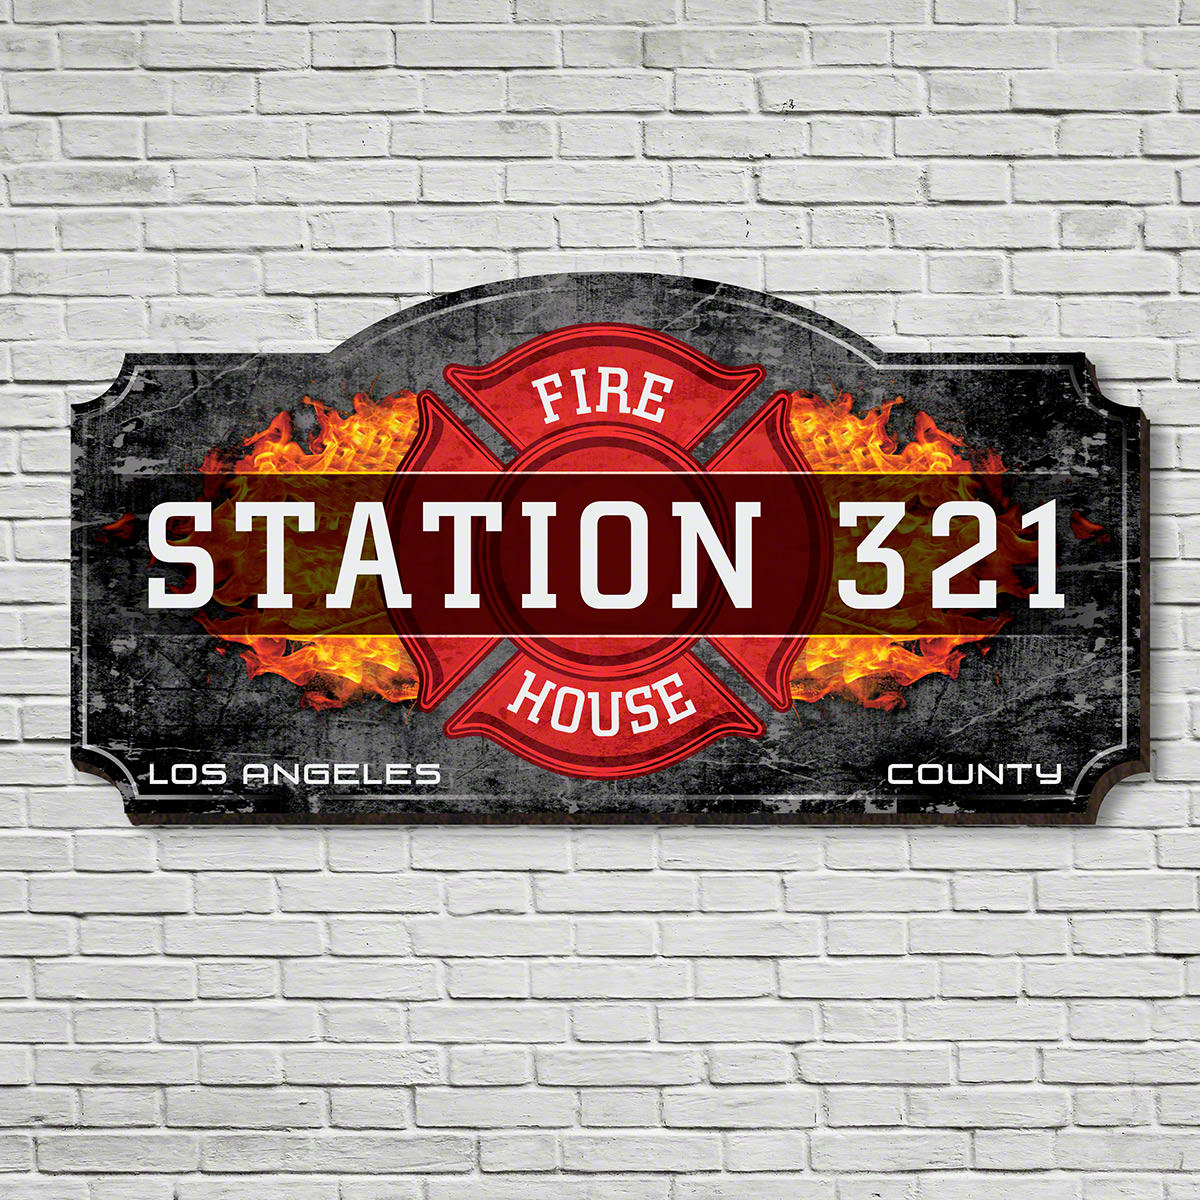 Firehouse-Customized-Wooden-Sign-for-Firefighters